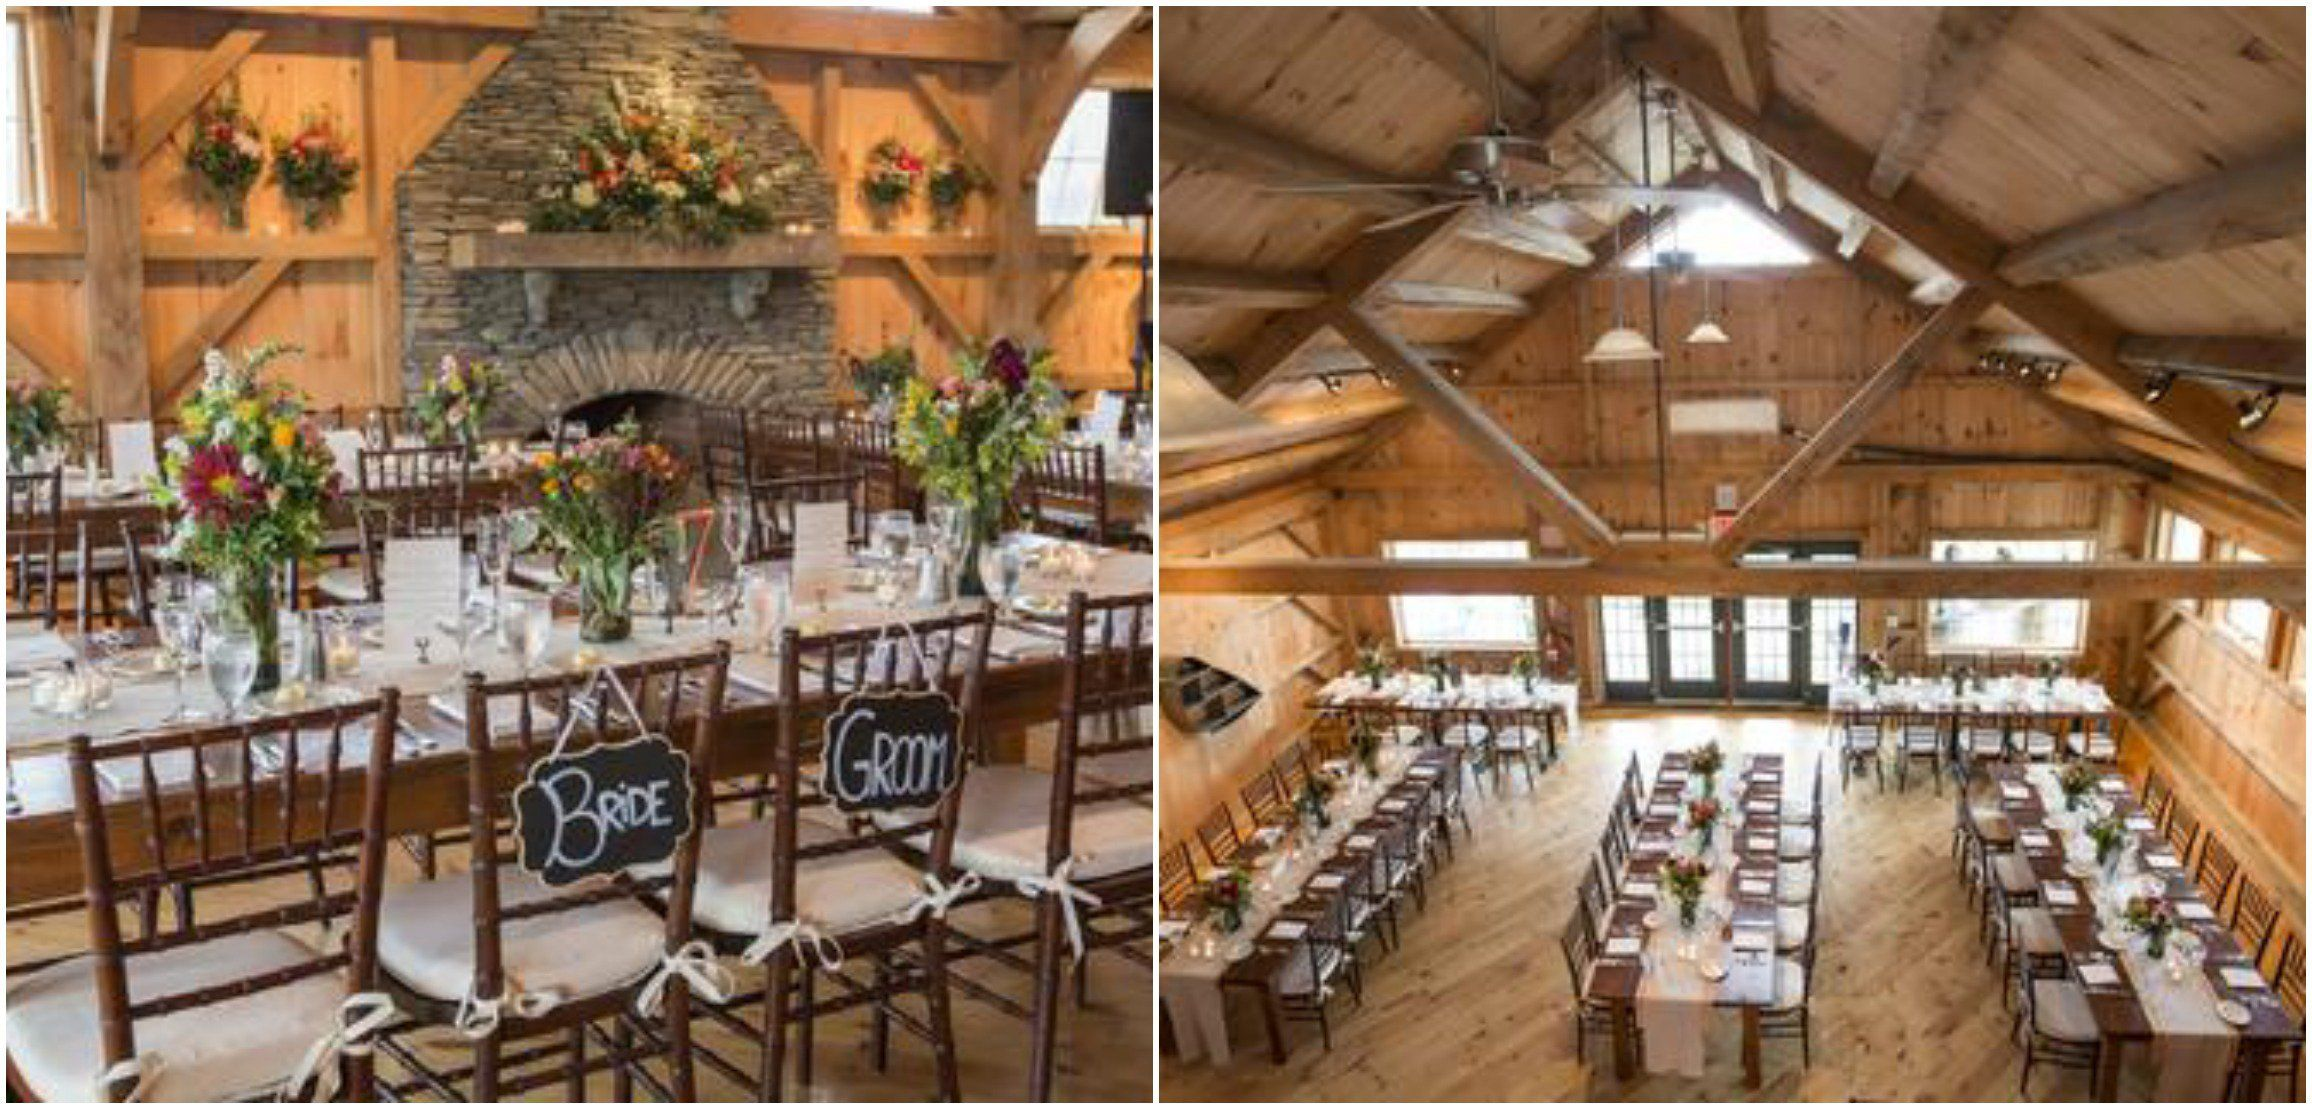 Top 10 rustic wedding venues in new england island weddings top 10 rustic wedding venues in new england junglespirit Image collections